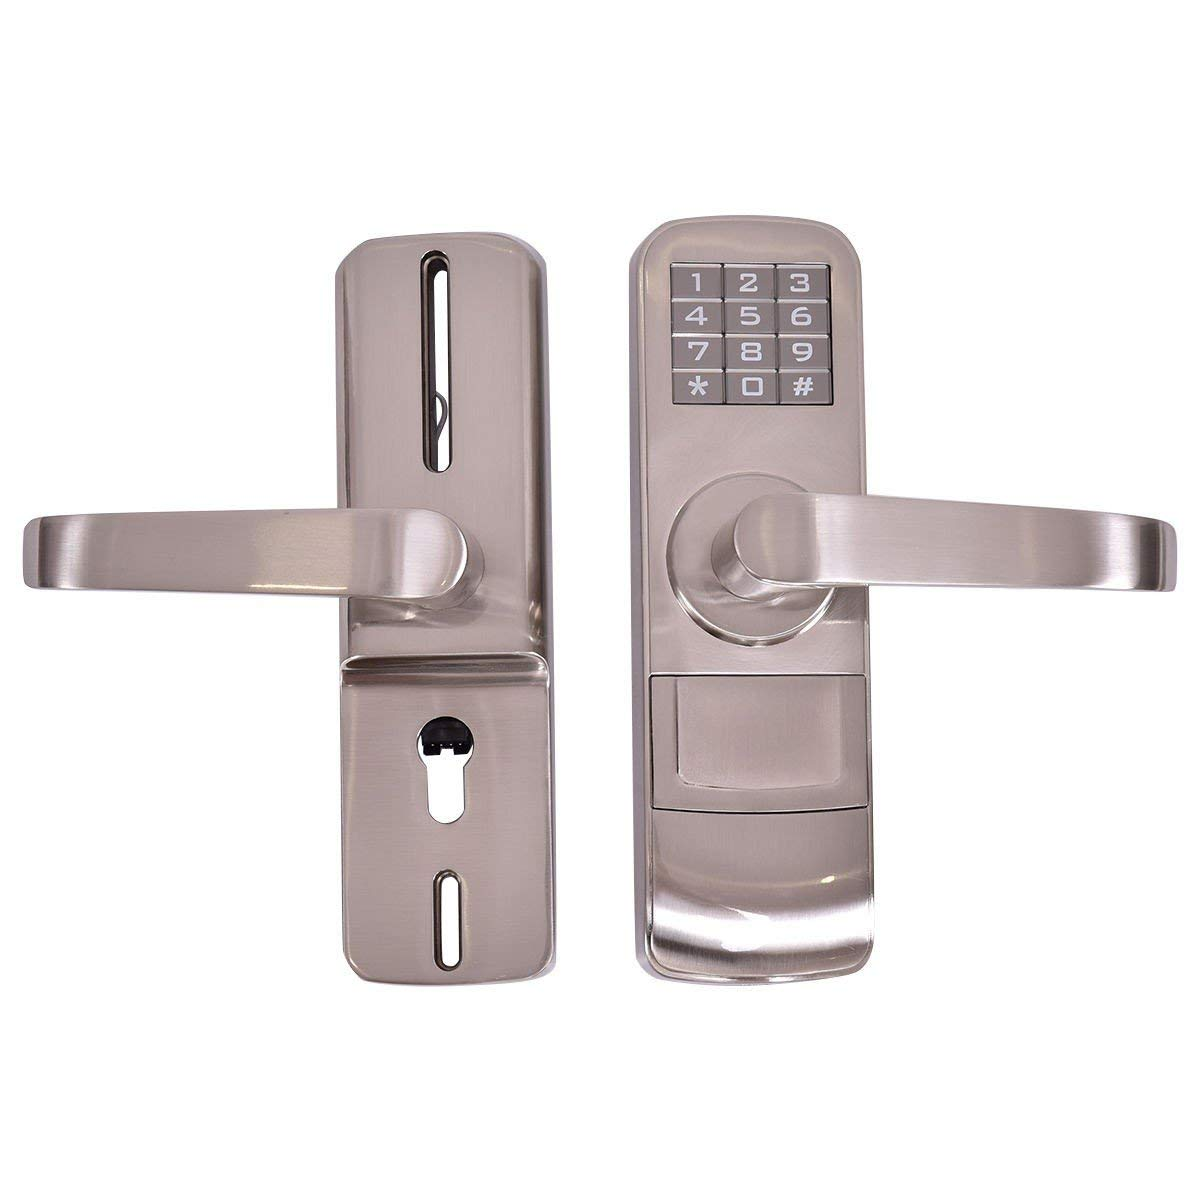 Cheap Door Keypad Security Find Door Keypad Security Deals On Line